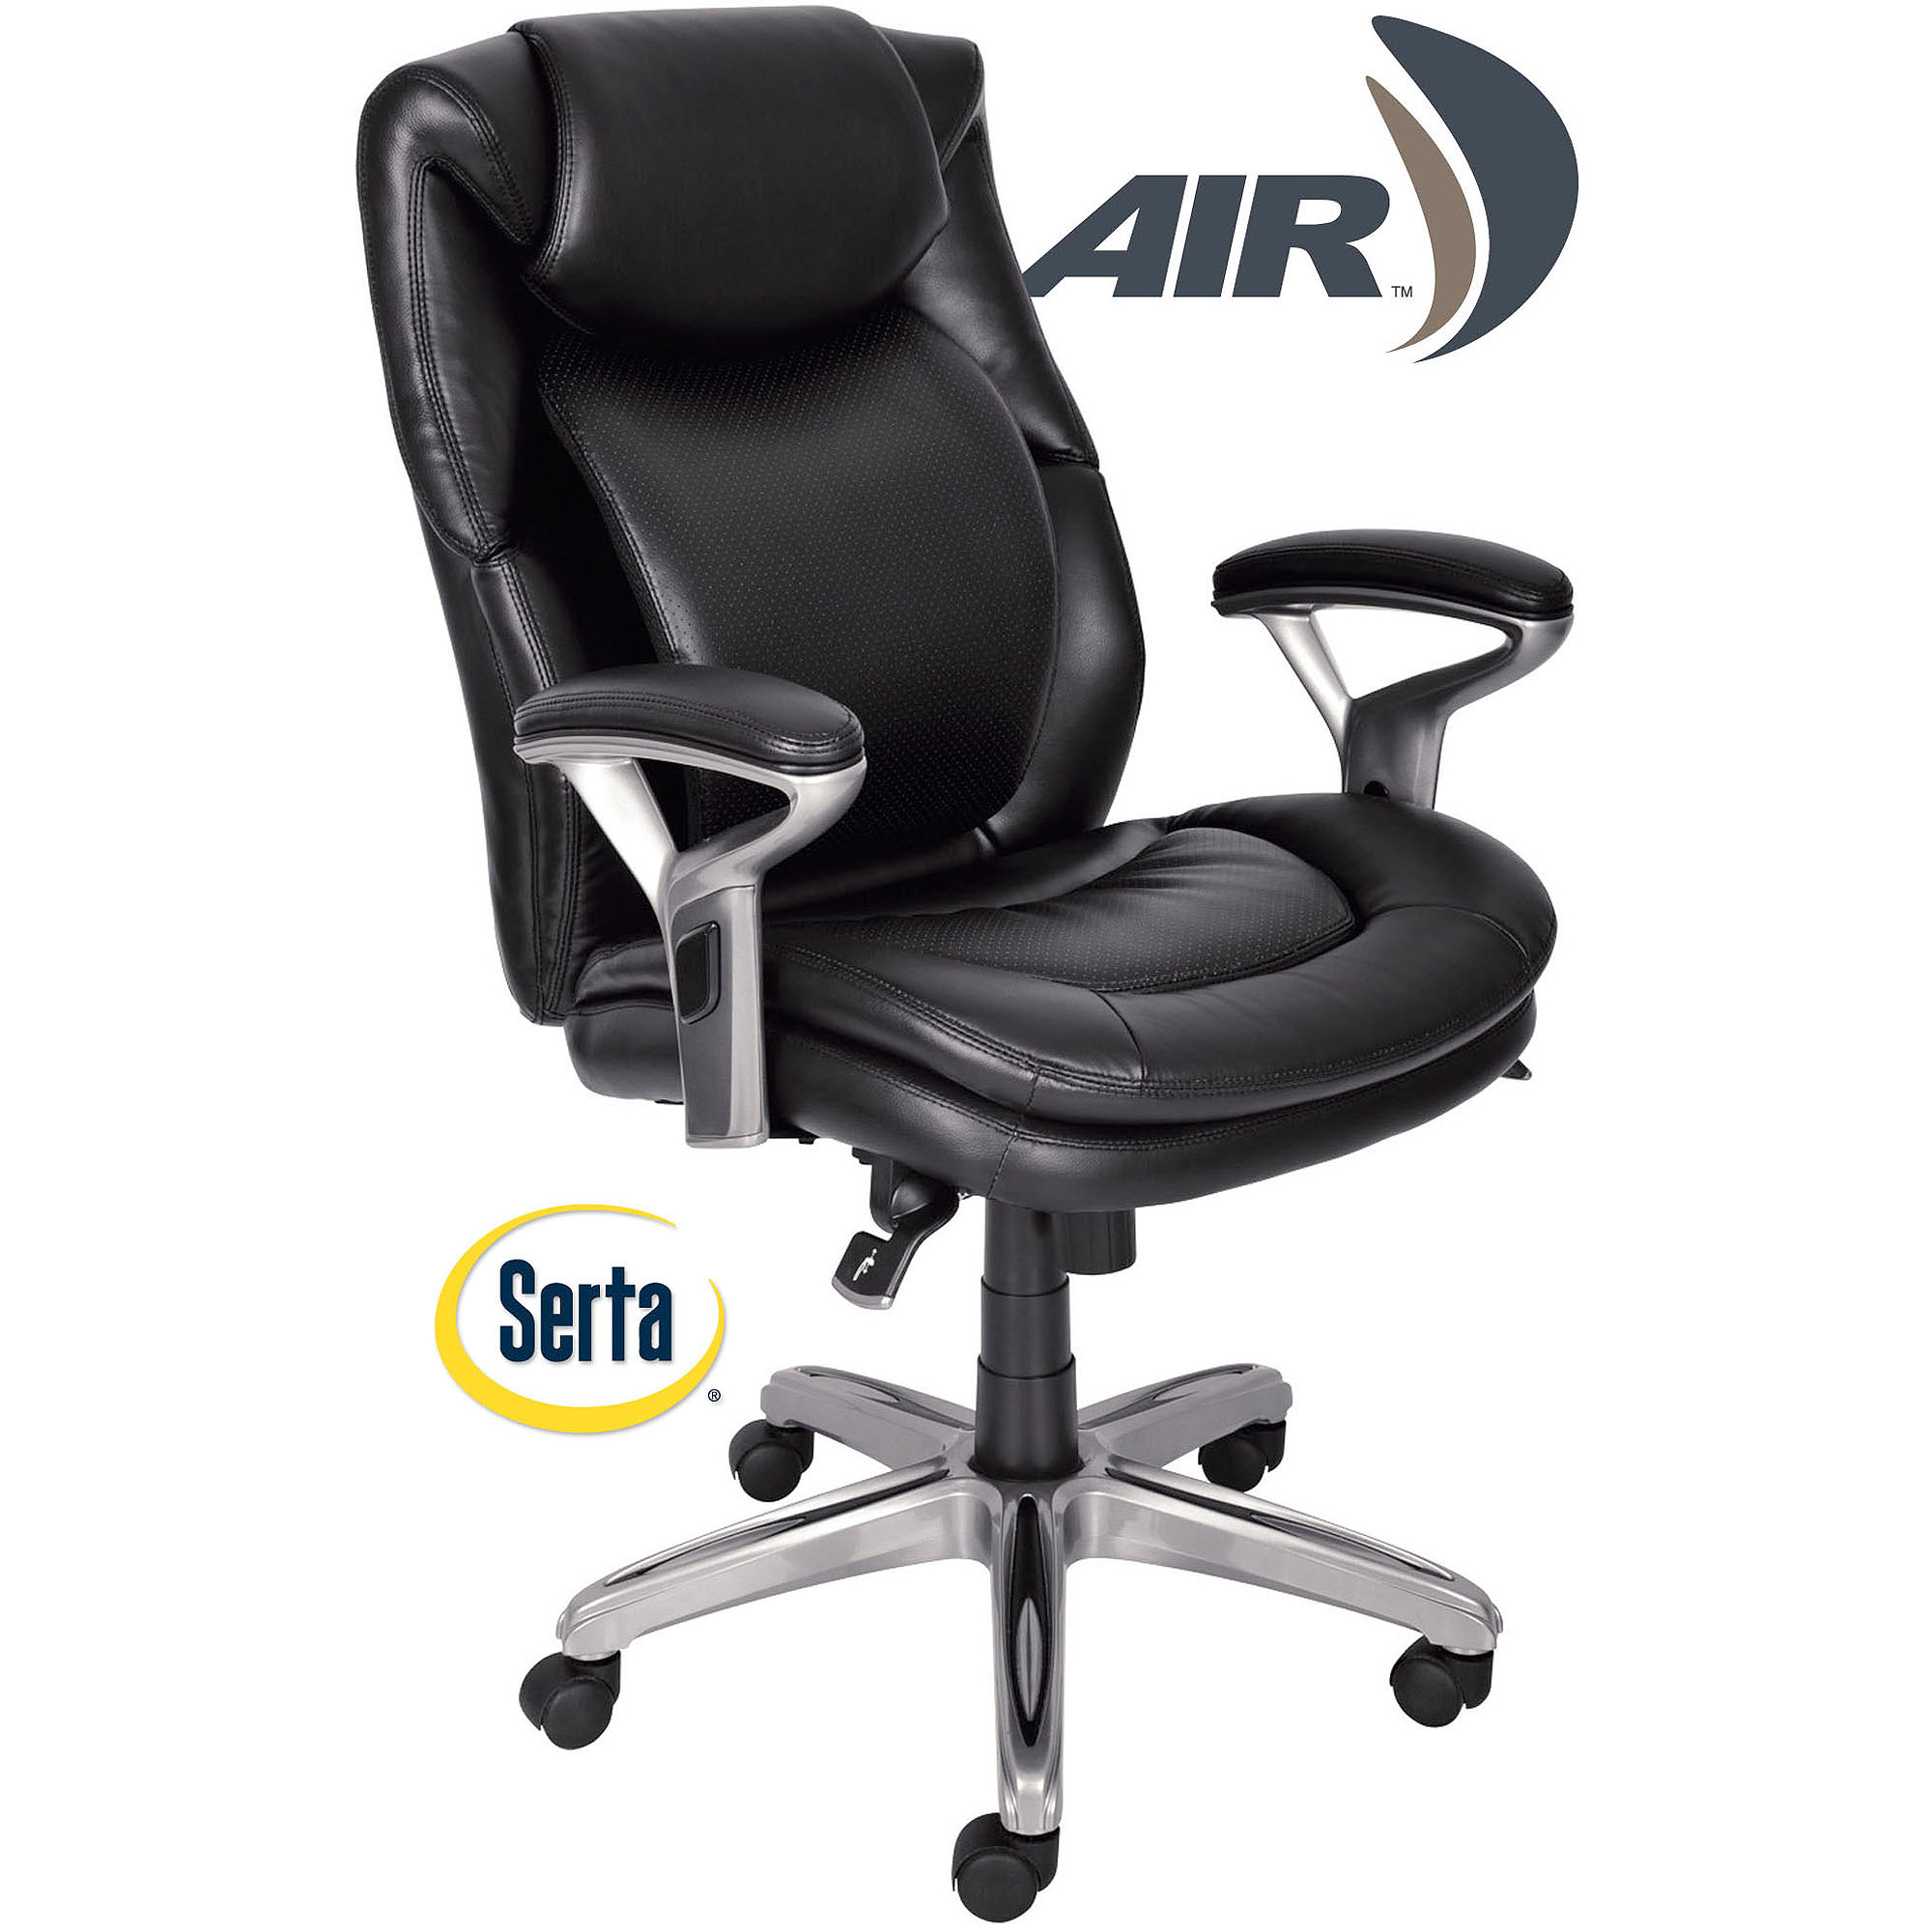 Serta AIR Health And Wellness Mid Back Office Chair Bonded Leather, Smooth  Black   Walmart.com